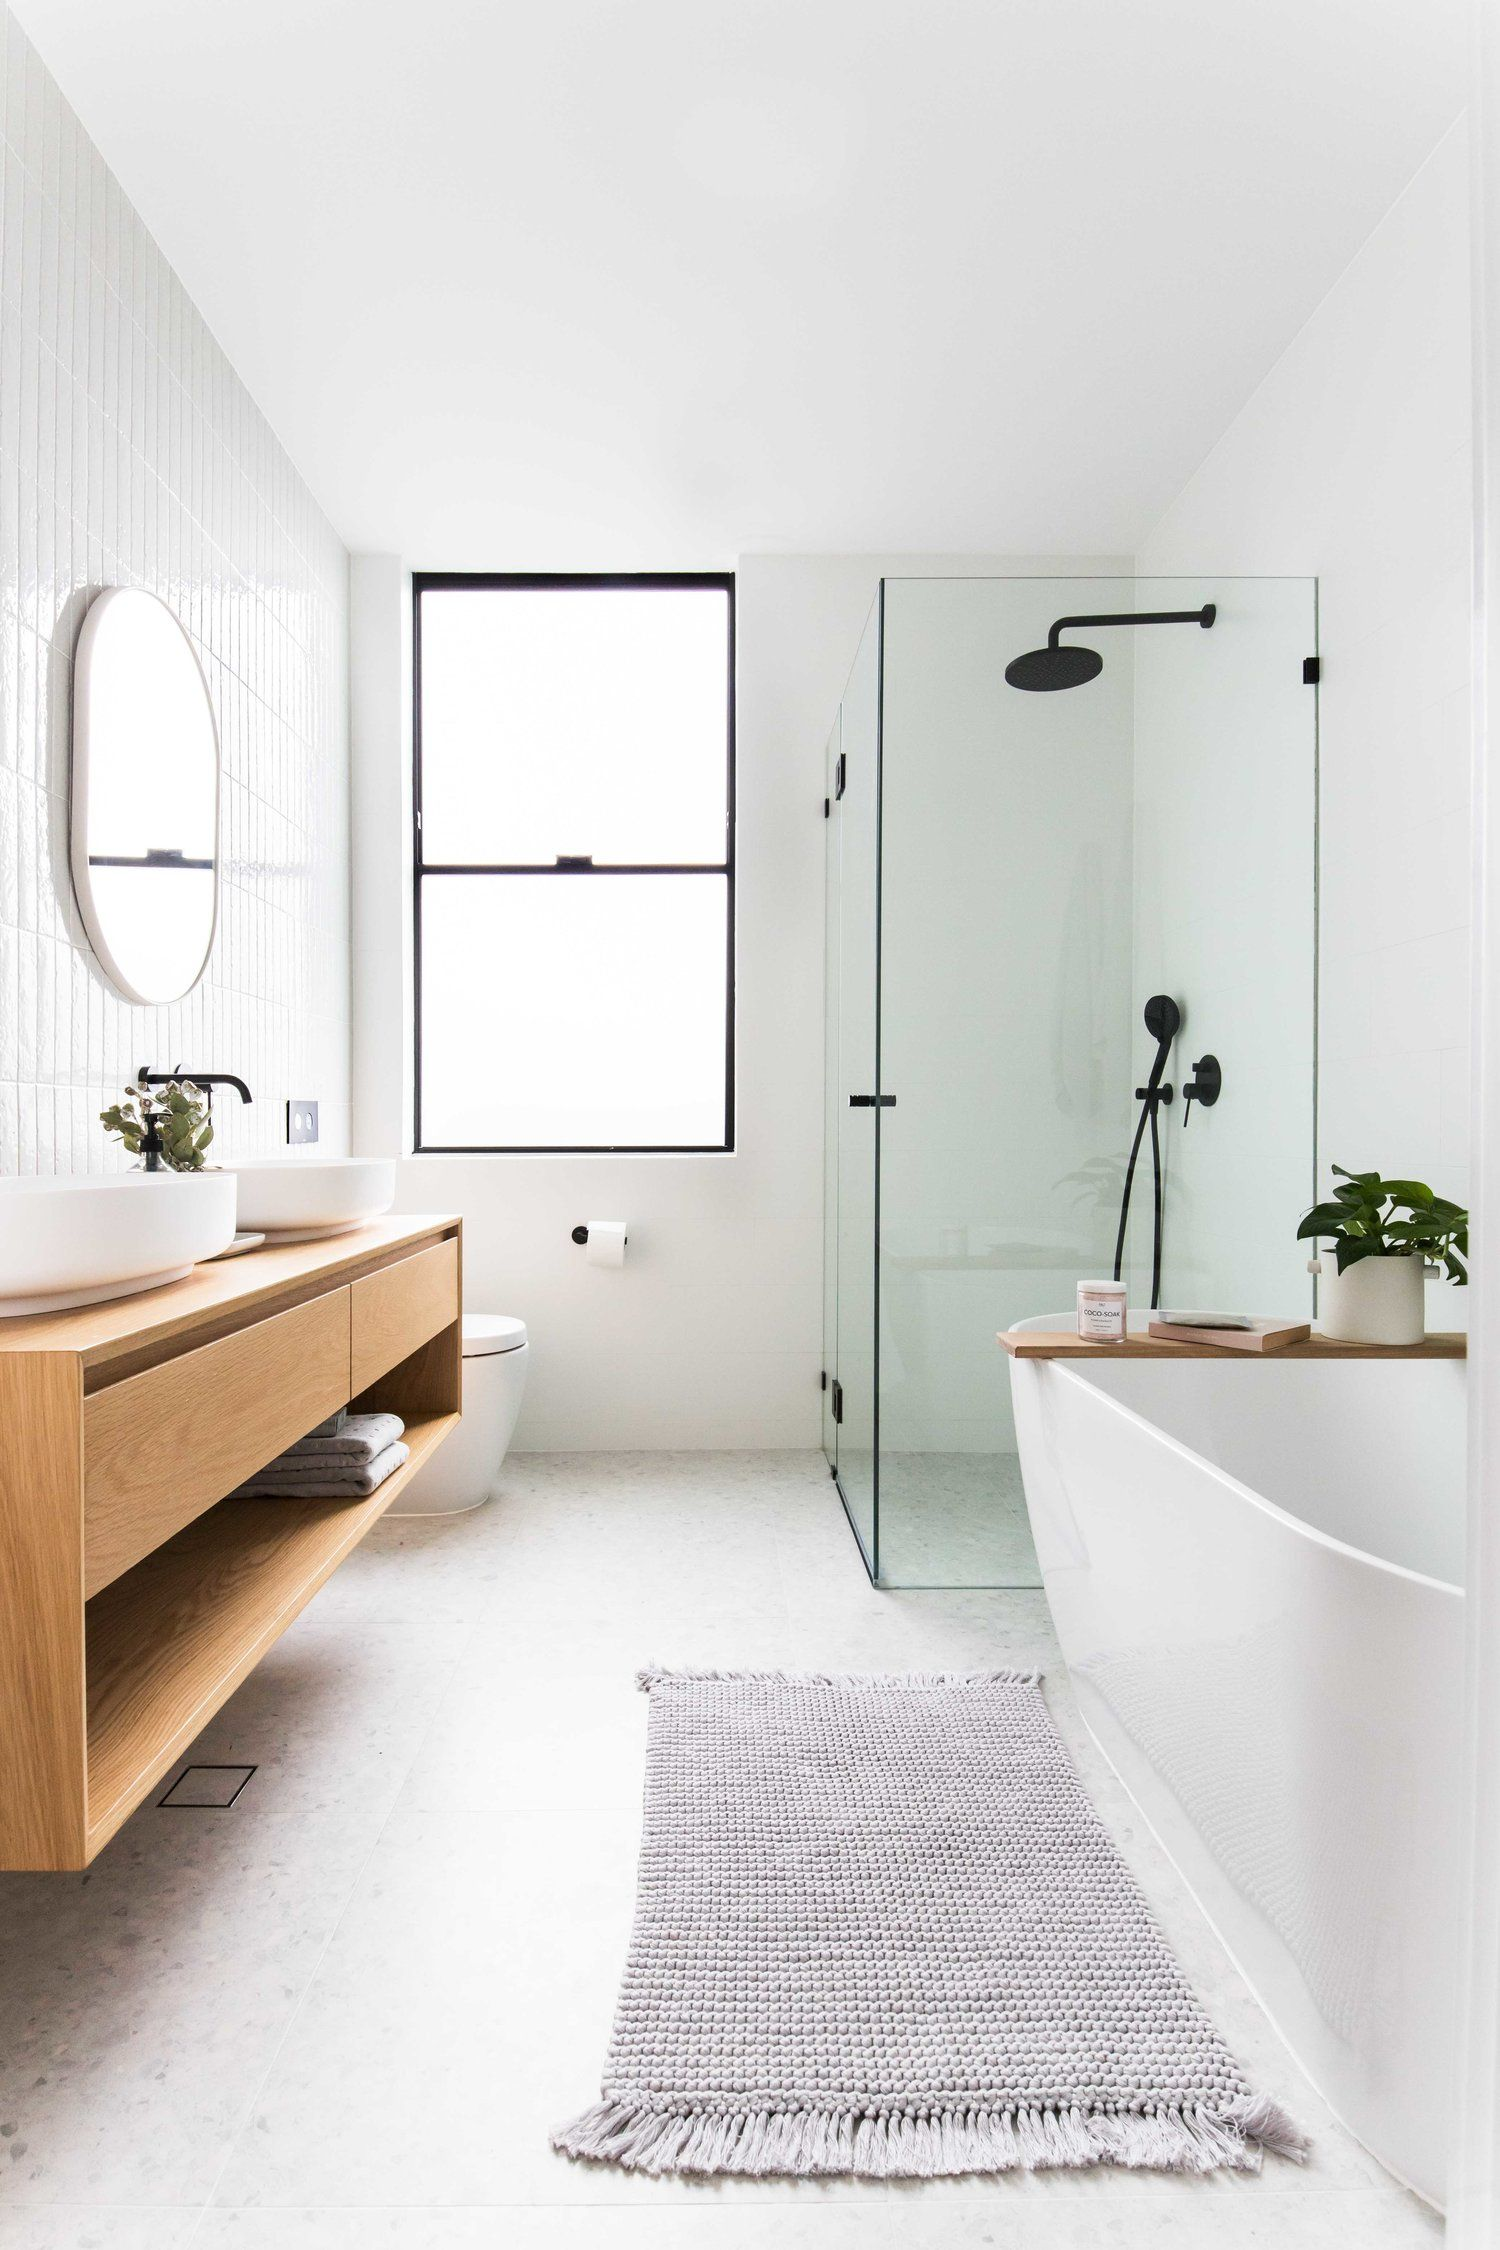 13 Wood Bathroom Countertop Ideas You'll Want to S